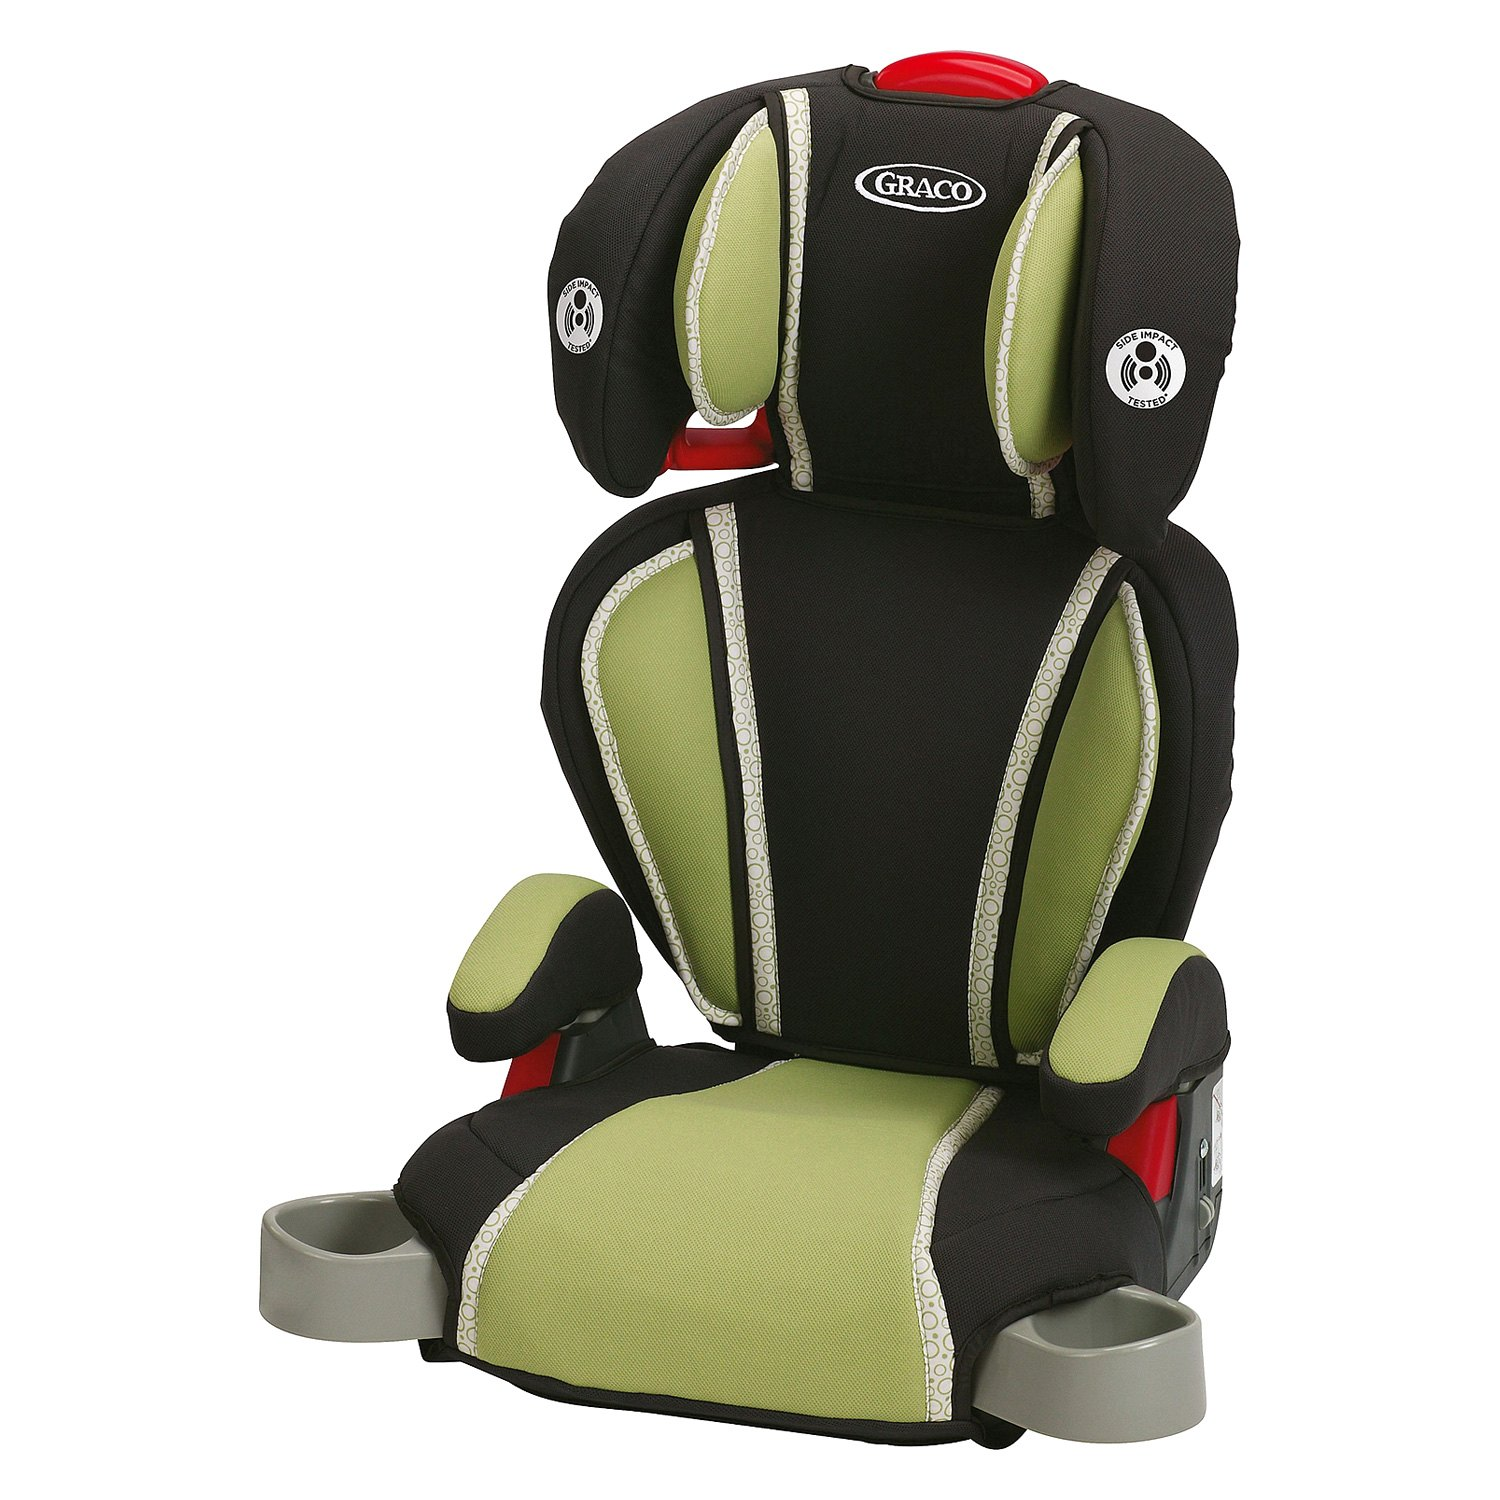 Graco Baby® 1893811 - Highback TurboBooster™ Go Green Style Car Seat